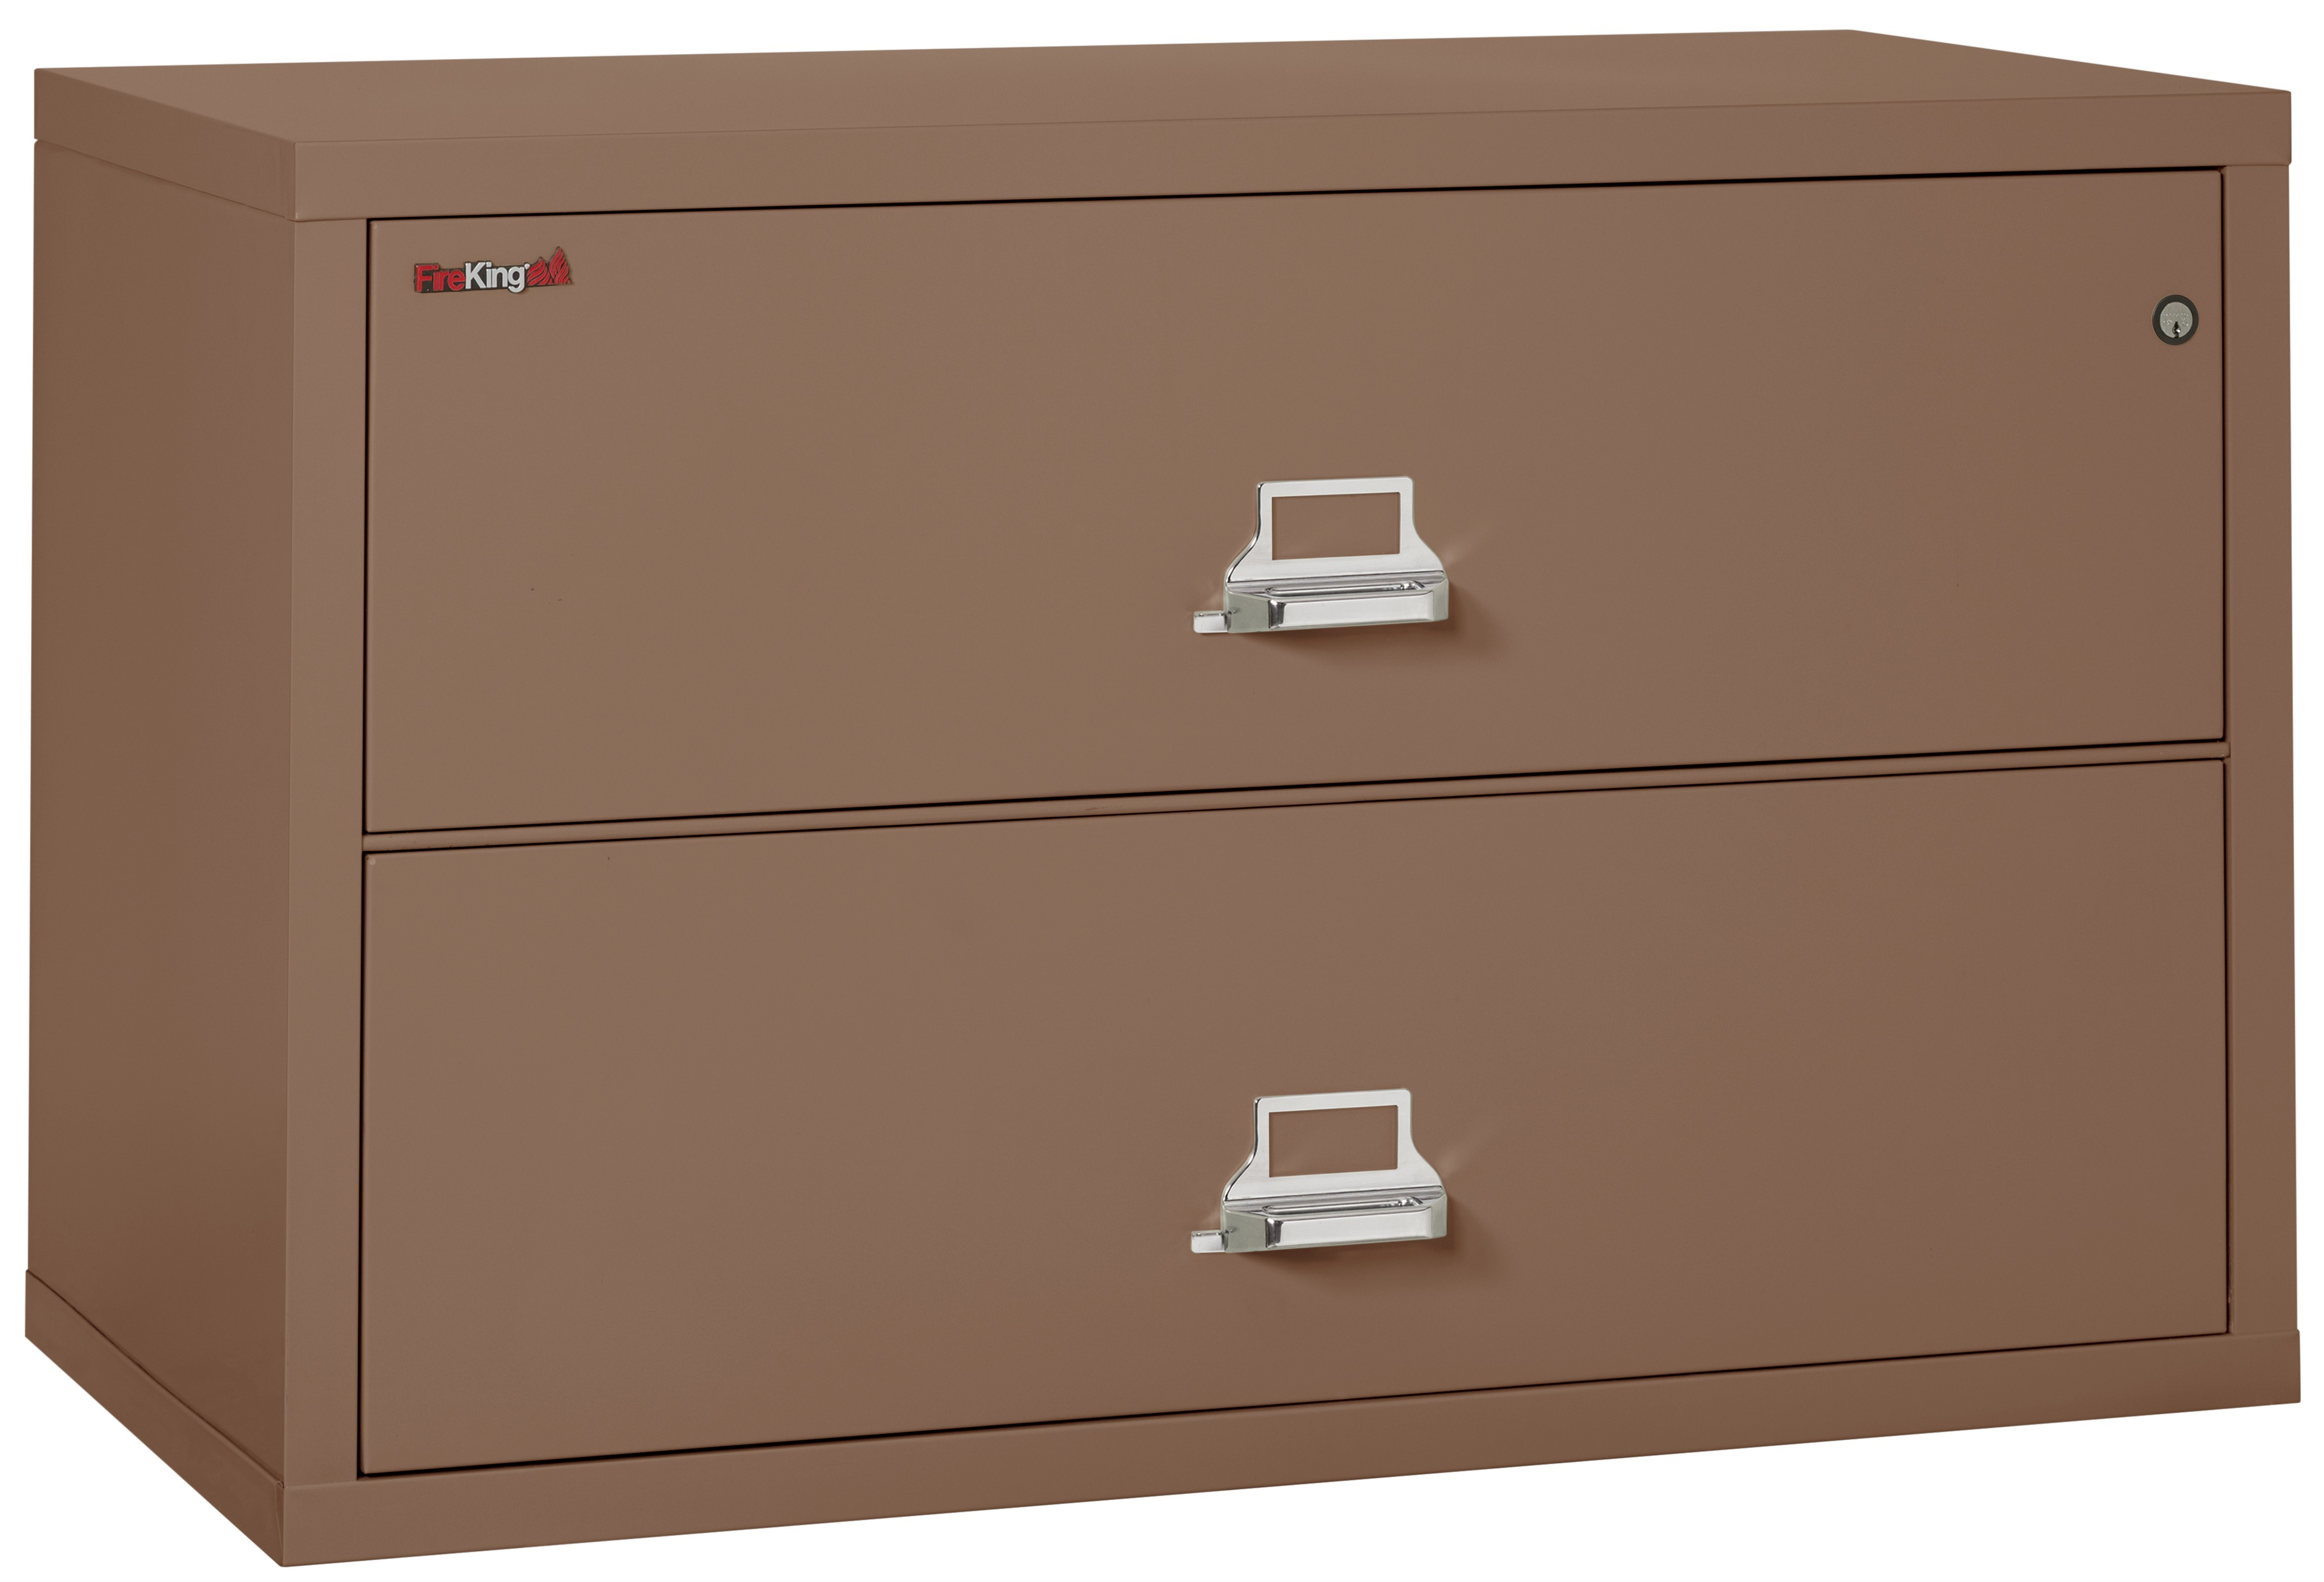 Admirable Fireking Fireproof 2 4422 Cbr Office Industrial High Security Ul Class 350 Keylock Brown 2 Drawer Lateral 44 D 1 2 Hour Fire Proof Filing Cabinet Download Free Architecture Designs Scobabritishbridgeorg